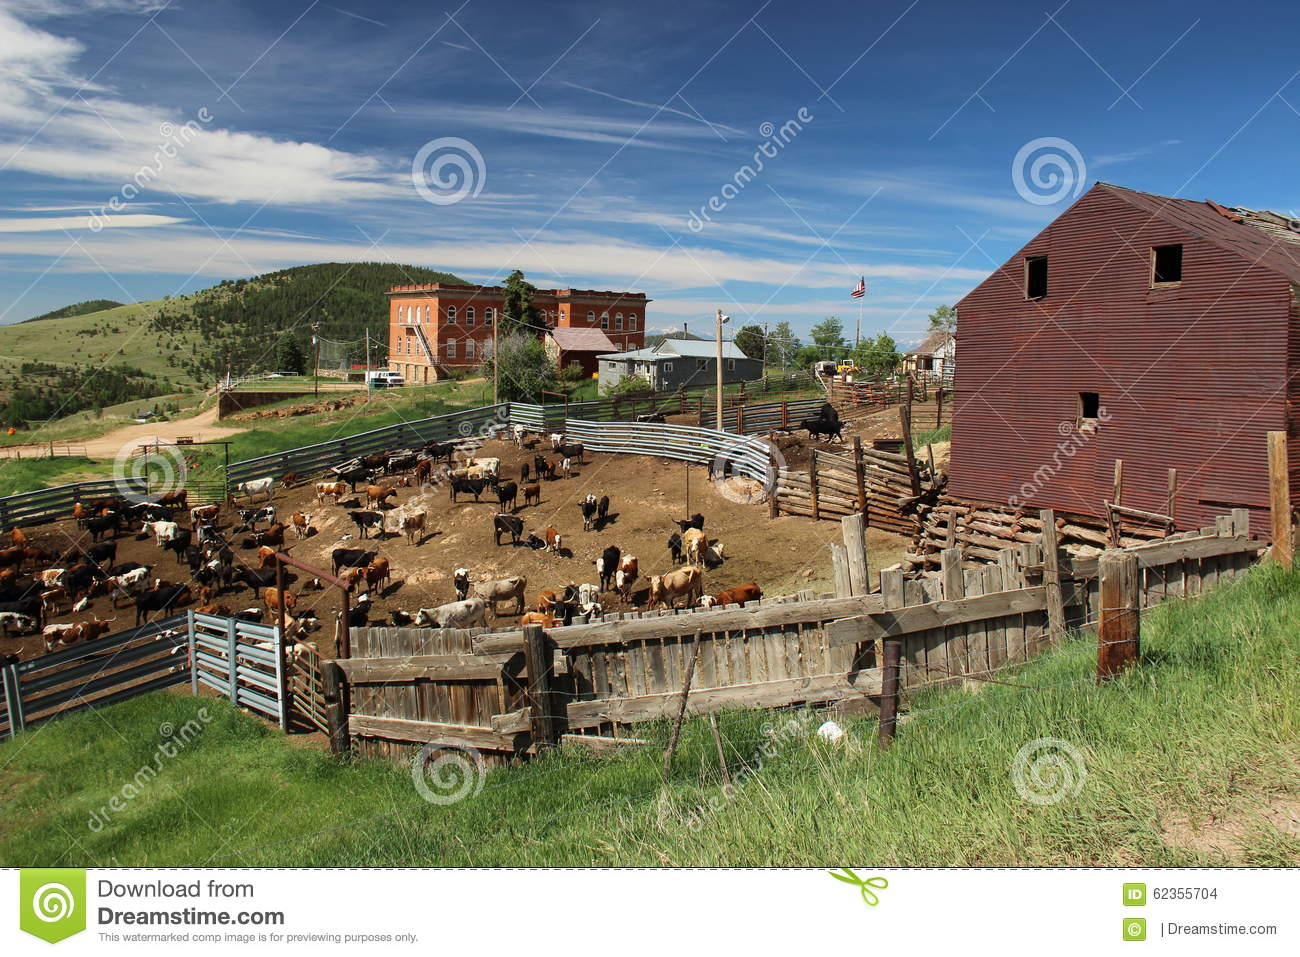 Victor Colorado Cattle Yards Stock Photo - Image: 62355704